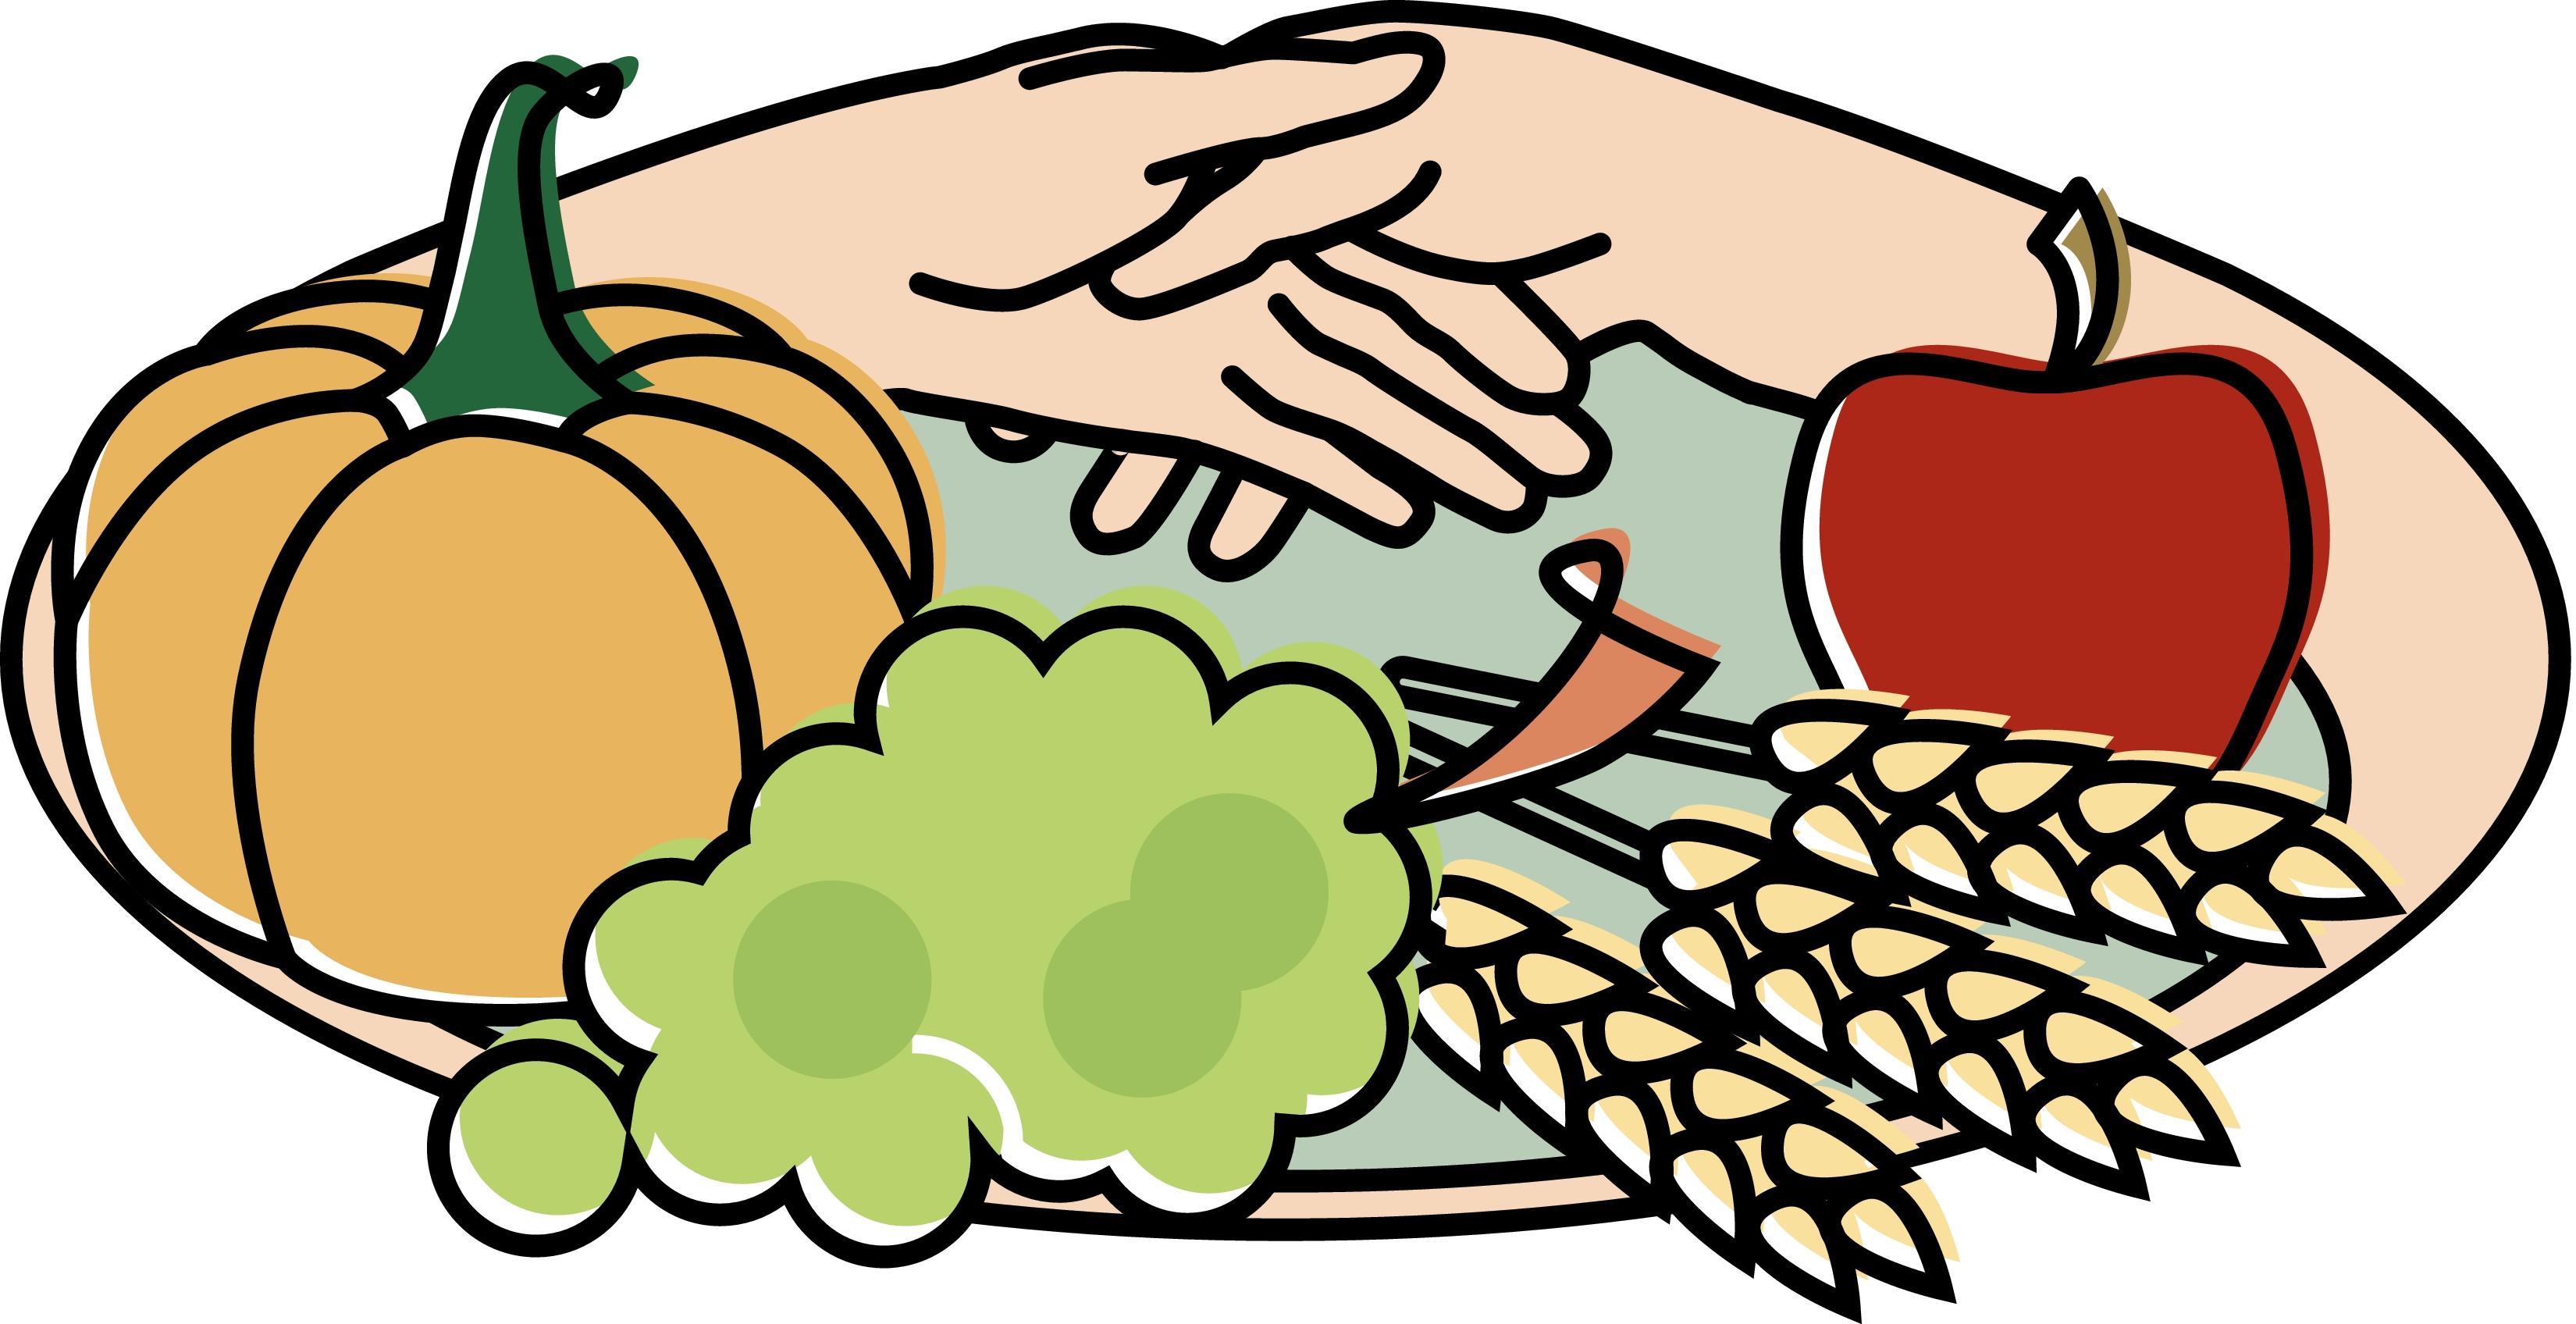 Meal clipart #2, Download drawings